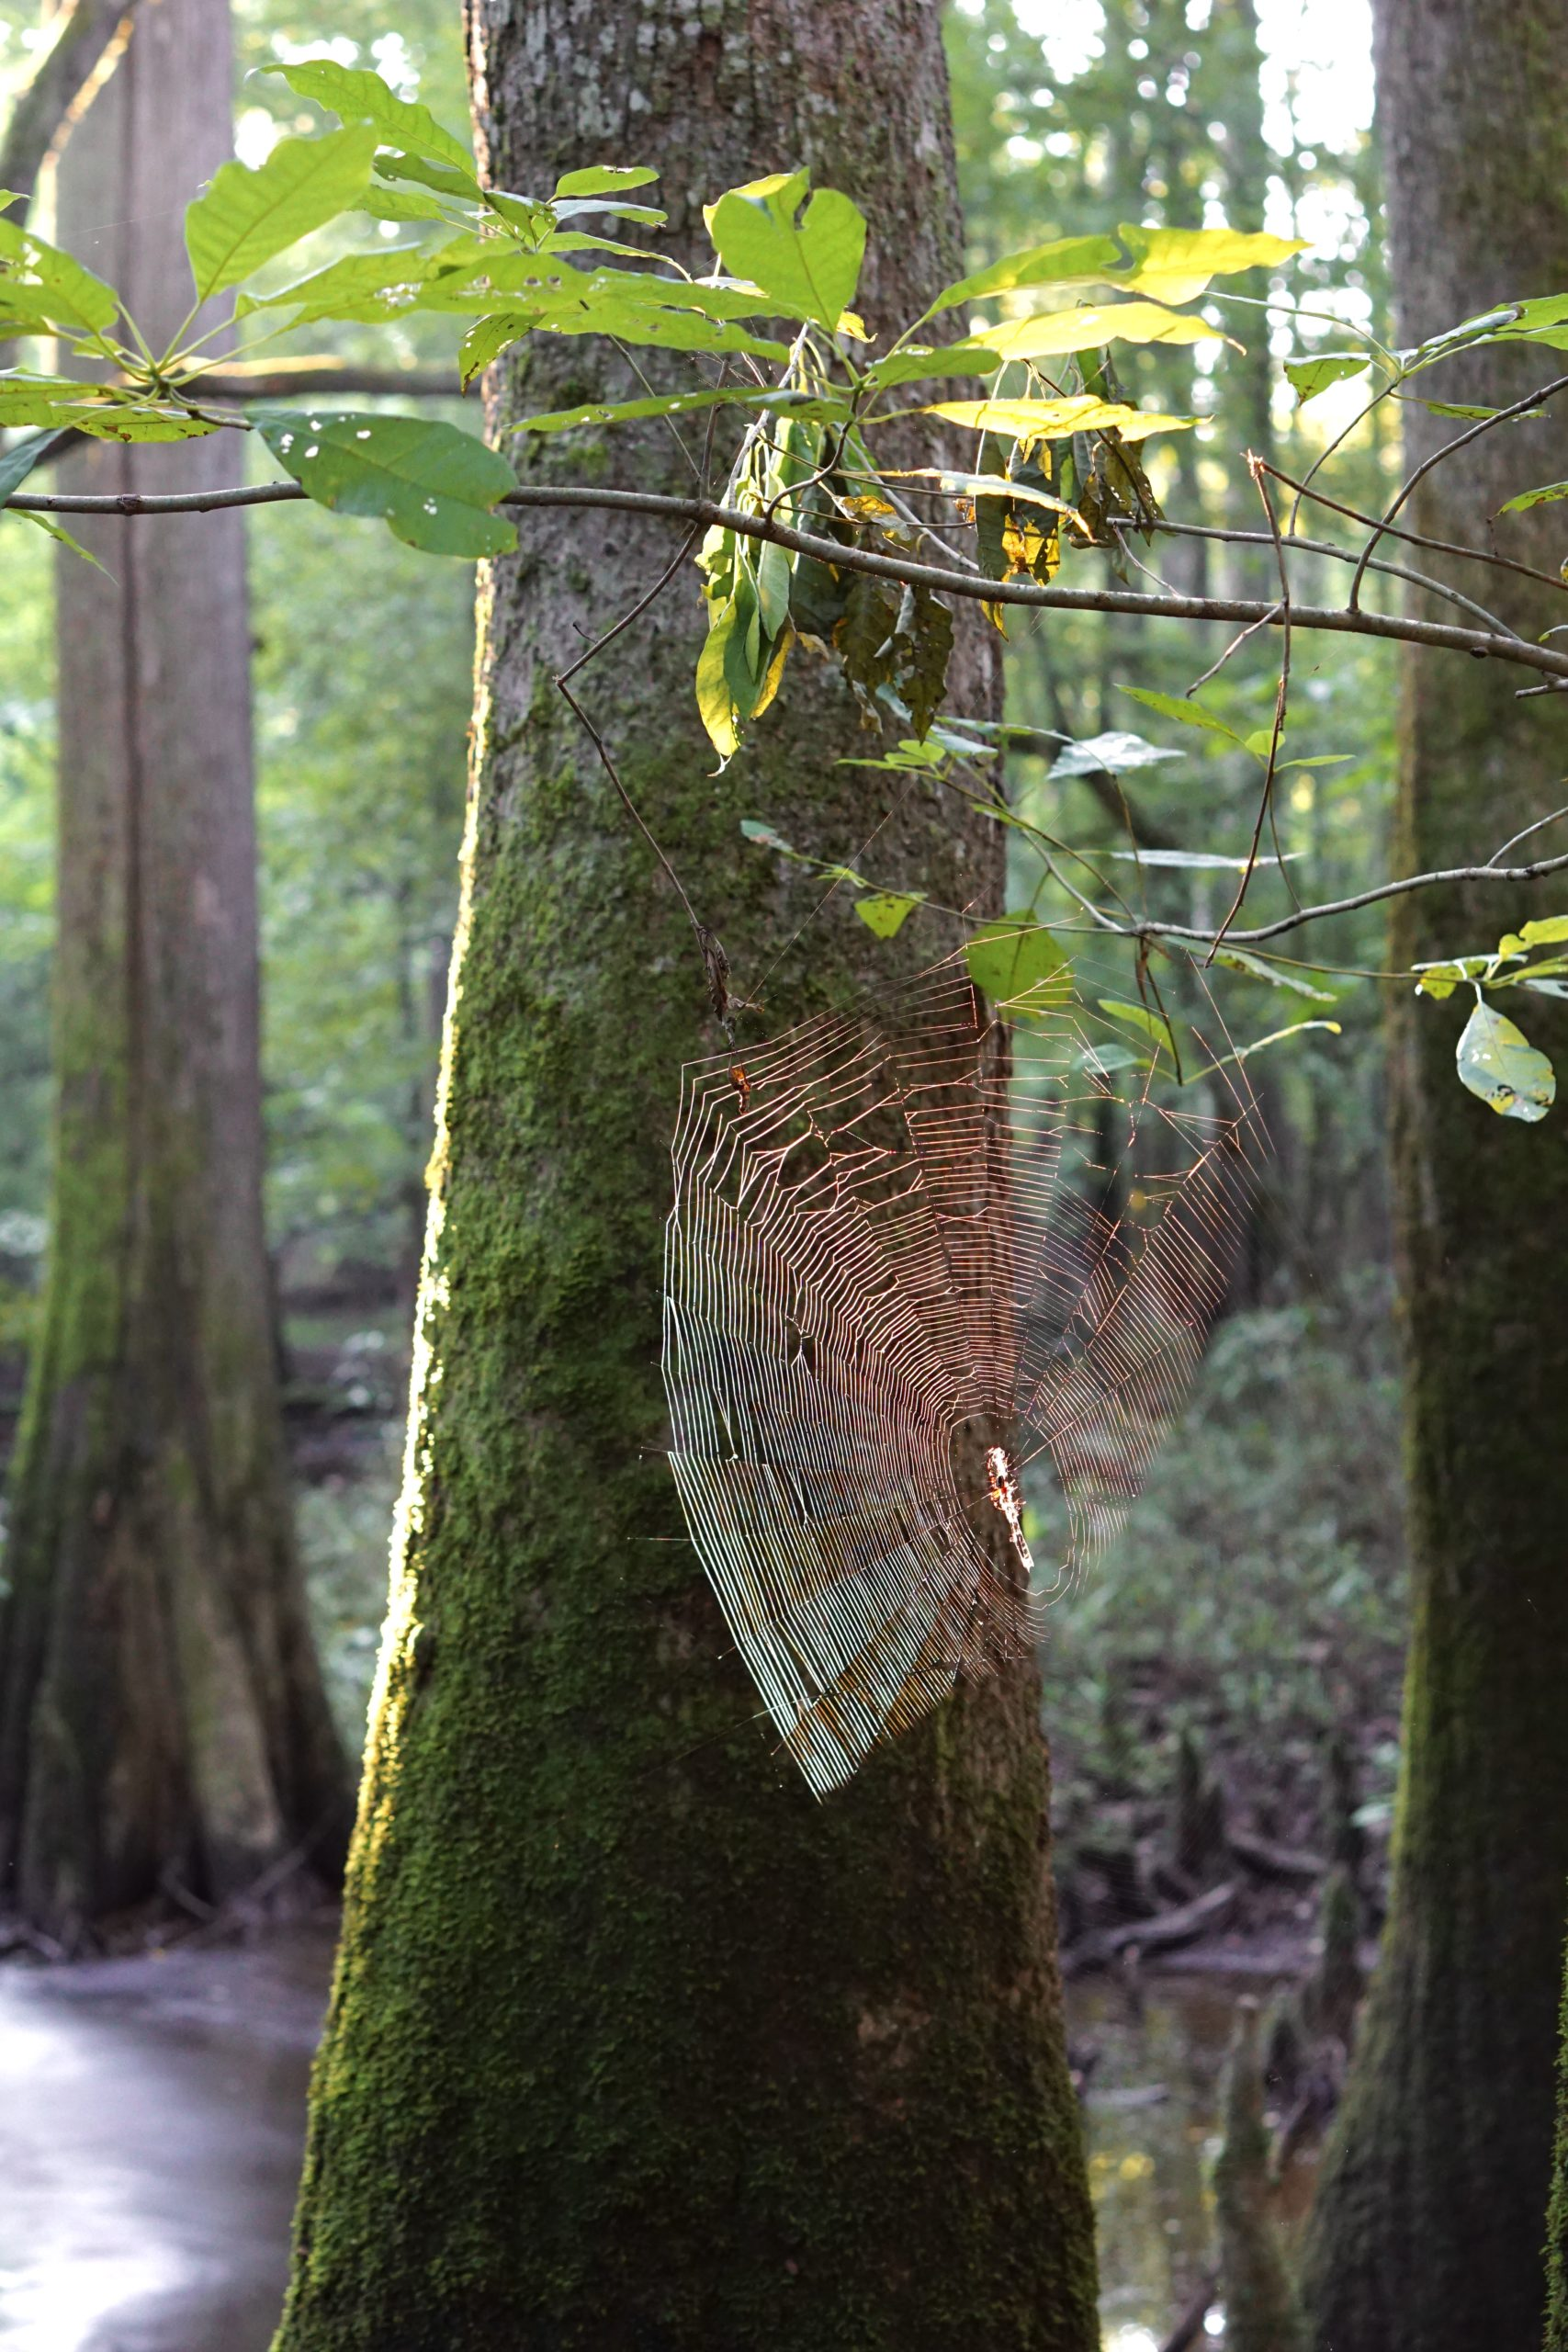 Spider web at Congaree National Park